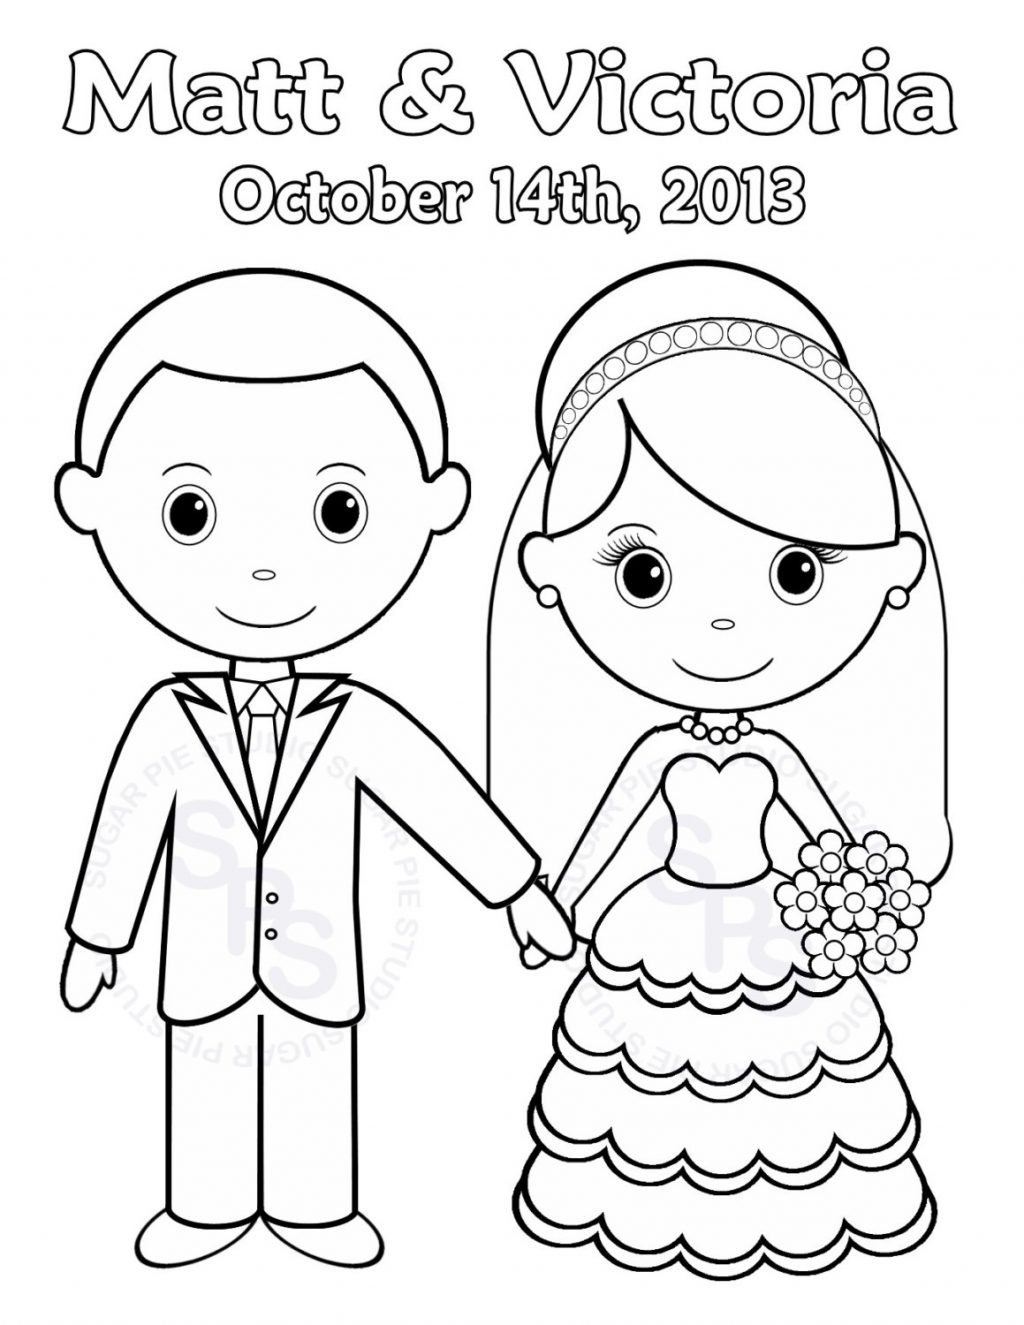 Coloring Pages ~ Now Coloring Pages For Weddings Free Printable Fast - Wedding Coloring Book Free Printable